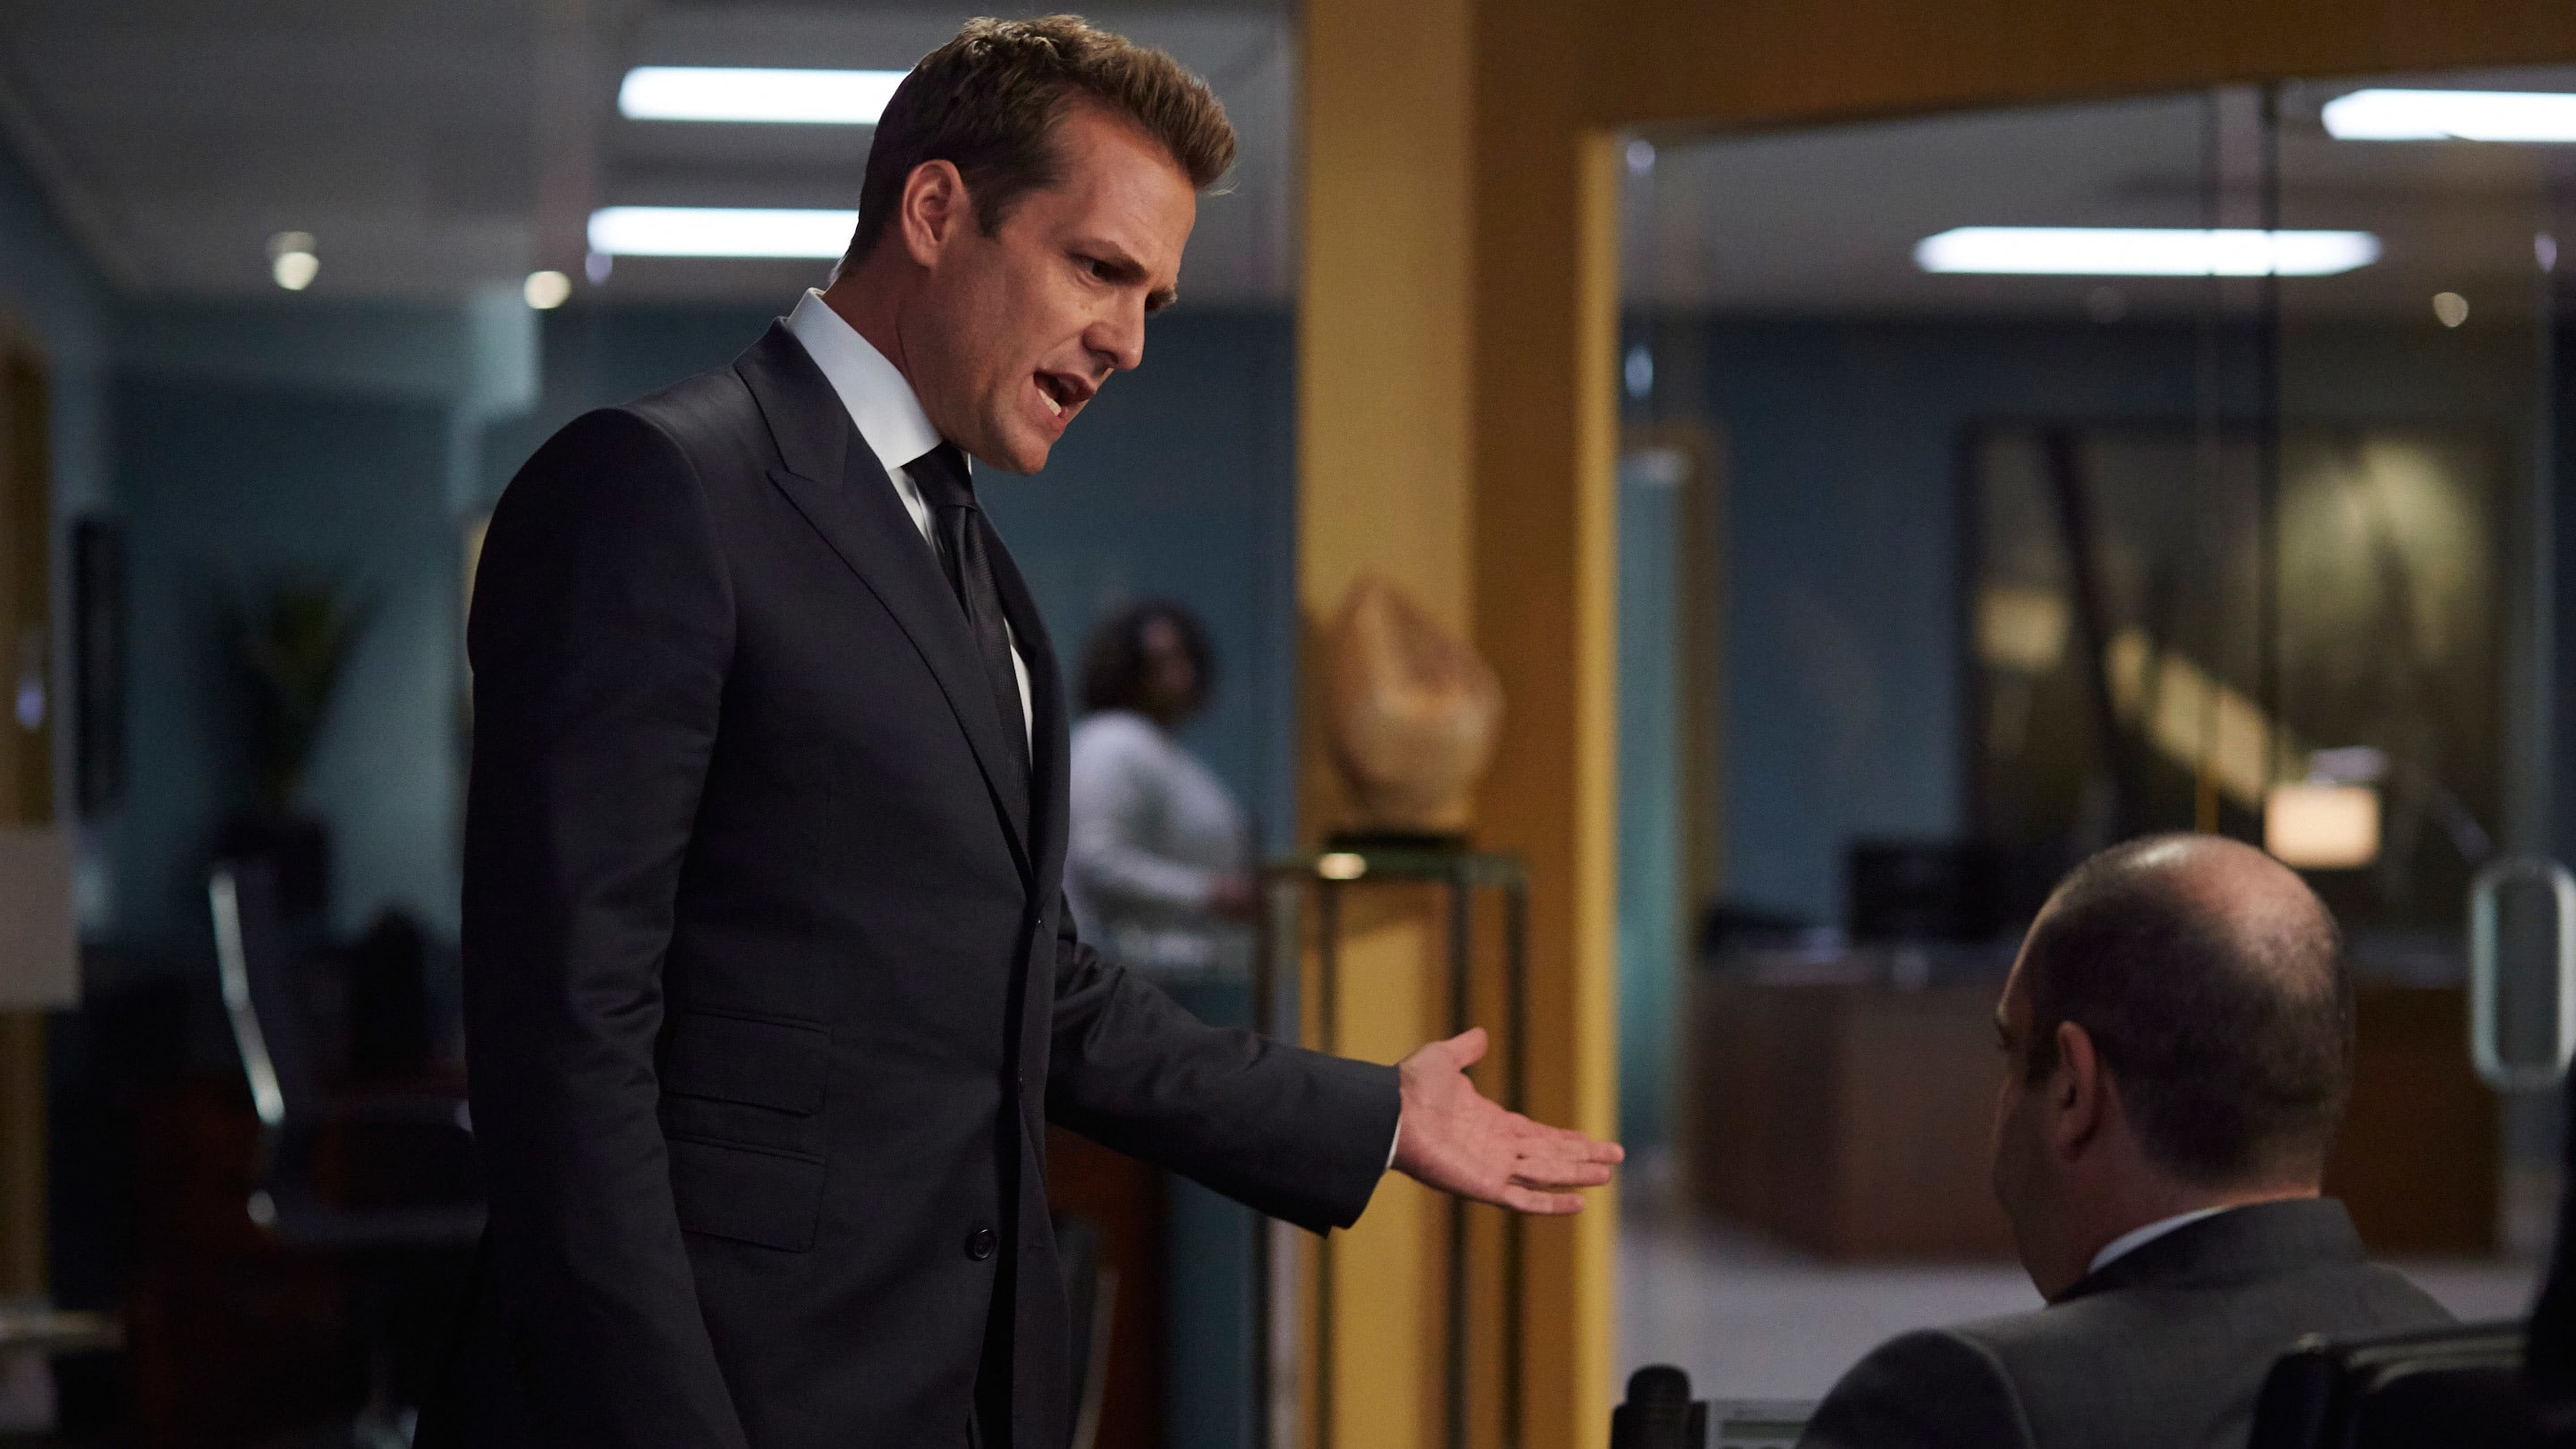 Suits - Season 6 Episode 11 : She's Gone